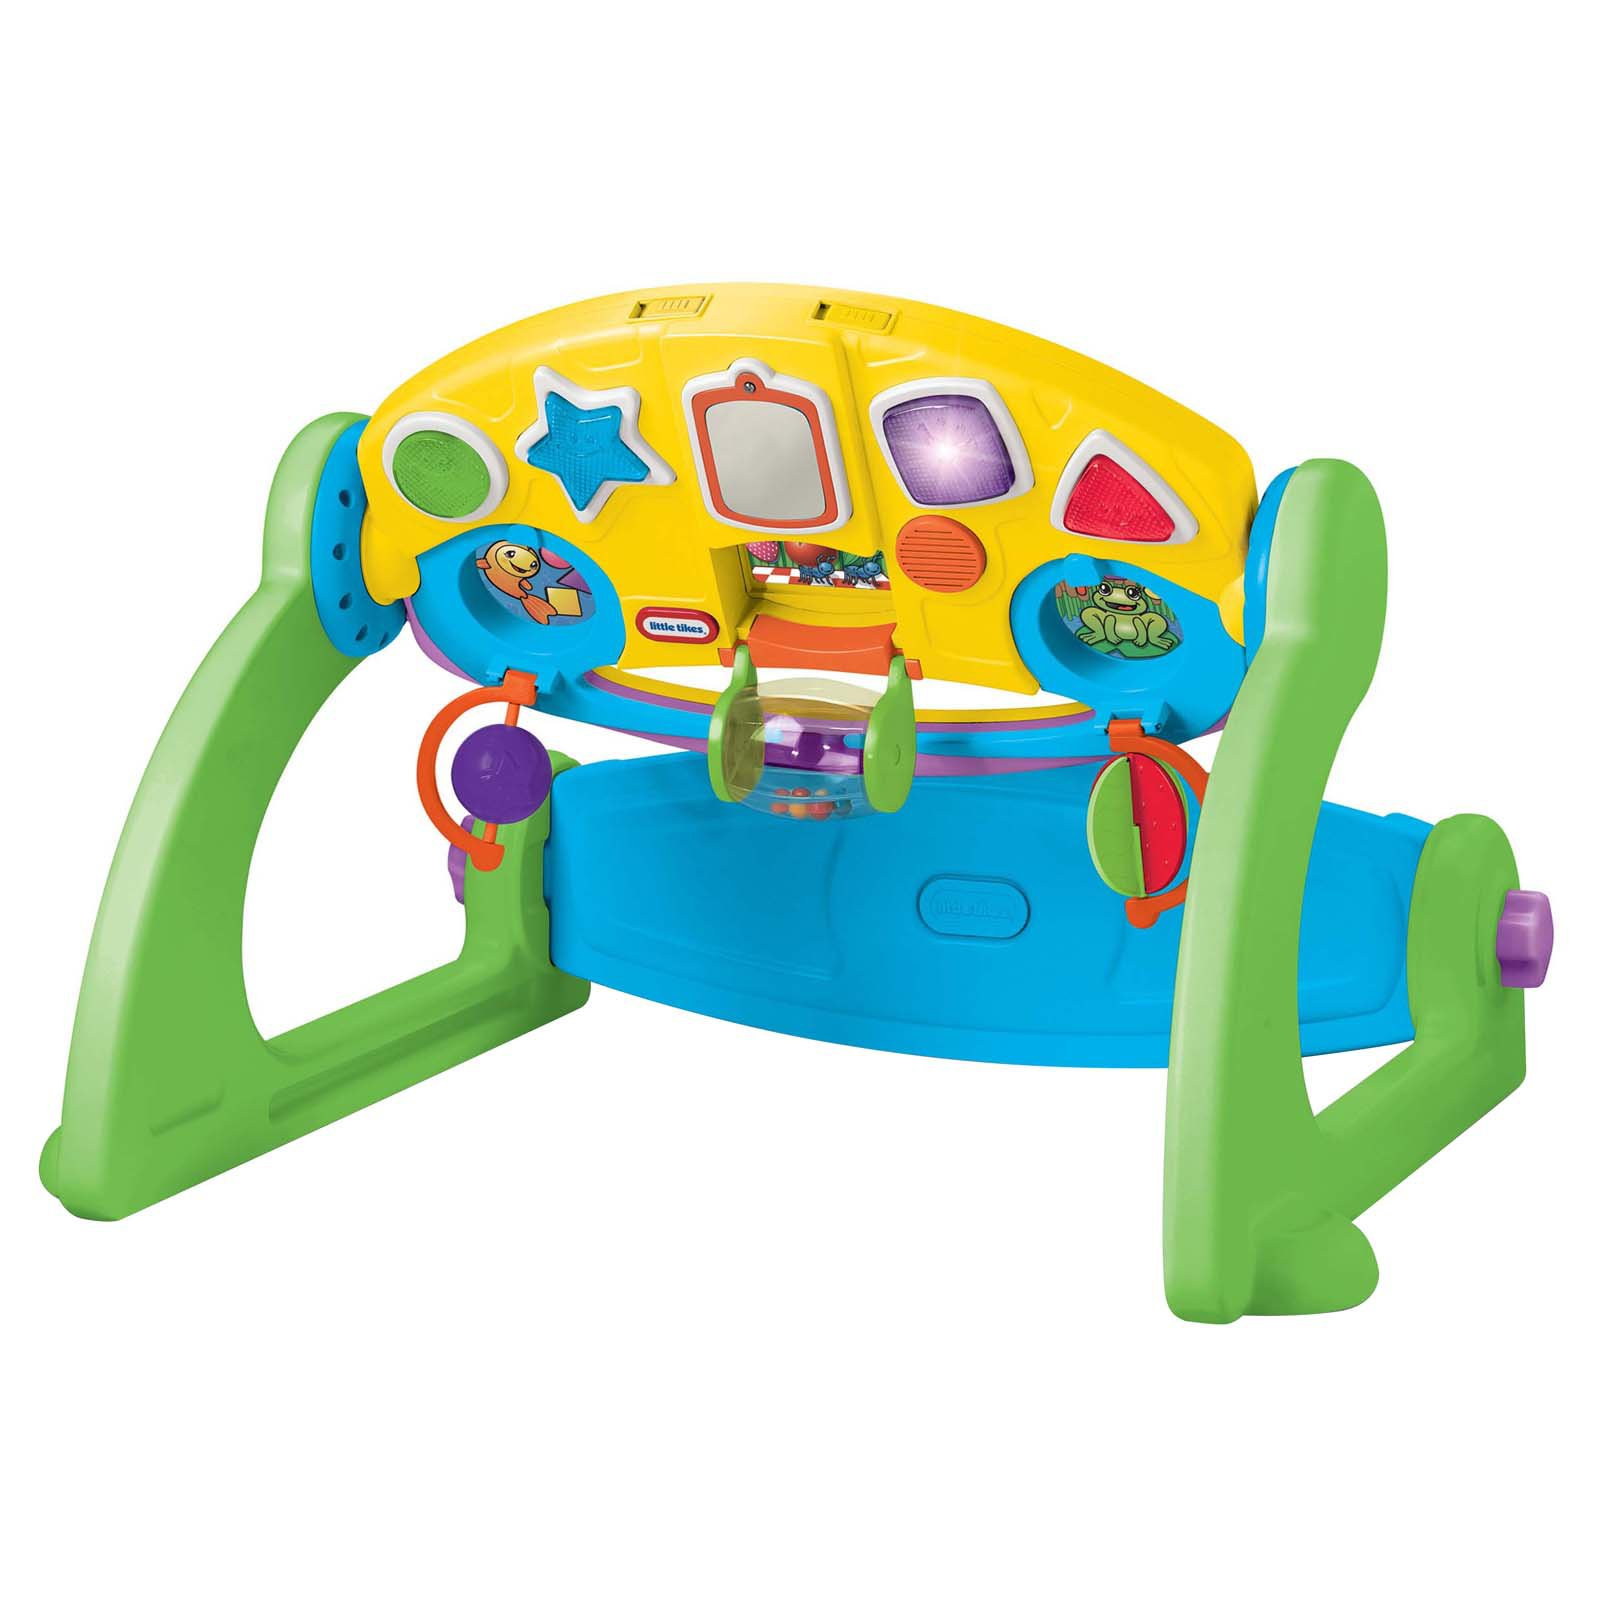 Little Tikes 5 In 1 Adjustable Gym Baby Gym Baby Play Kids